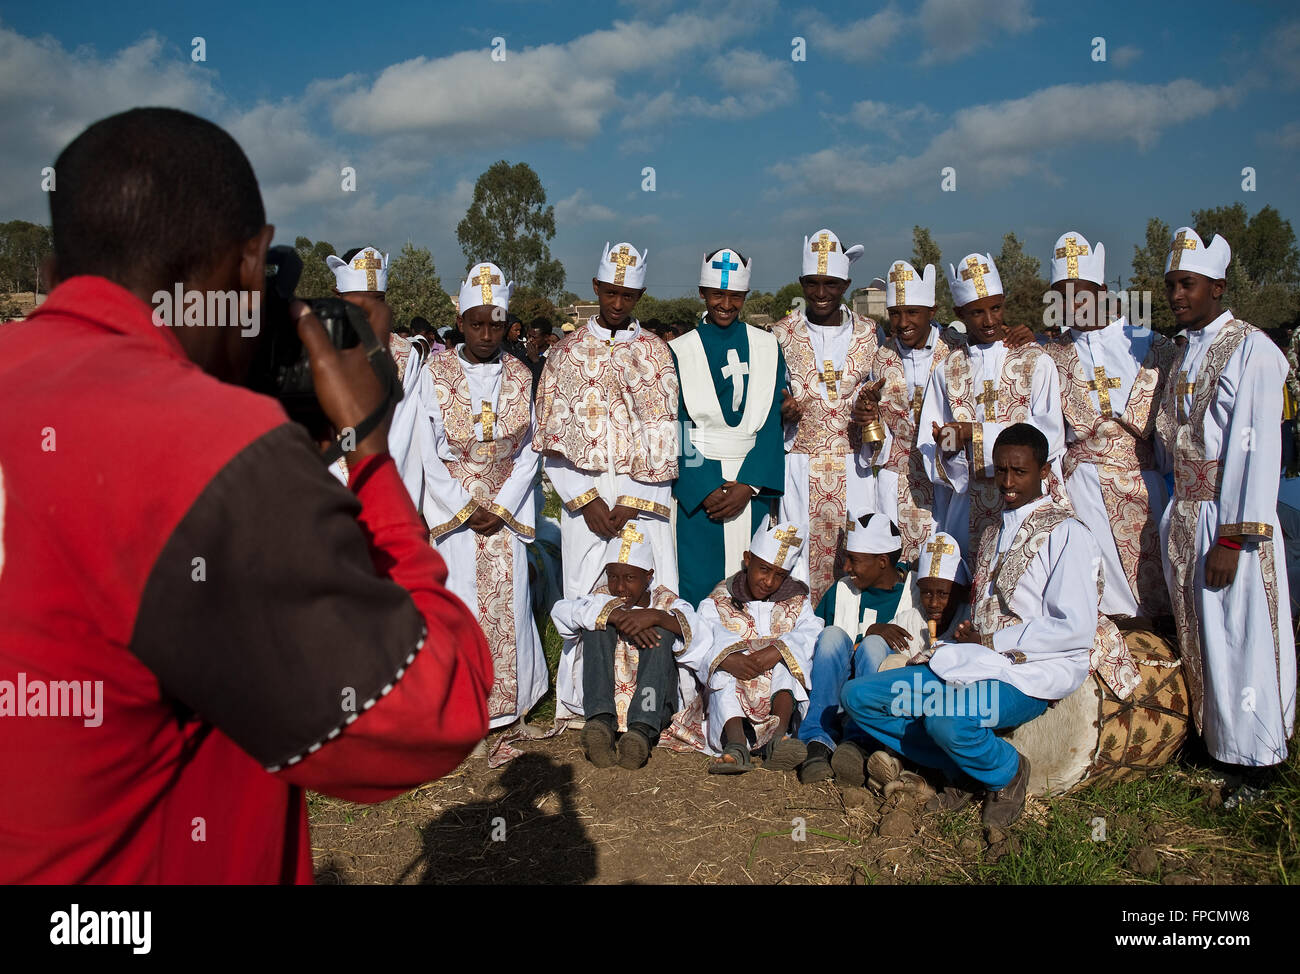 Boys studying the orthodox religion are being photographed during the festival of Timkat ( Ethiopia) - Stock Image